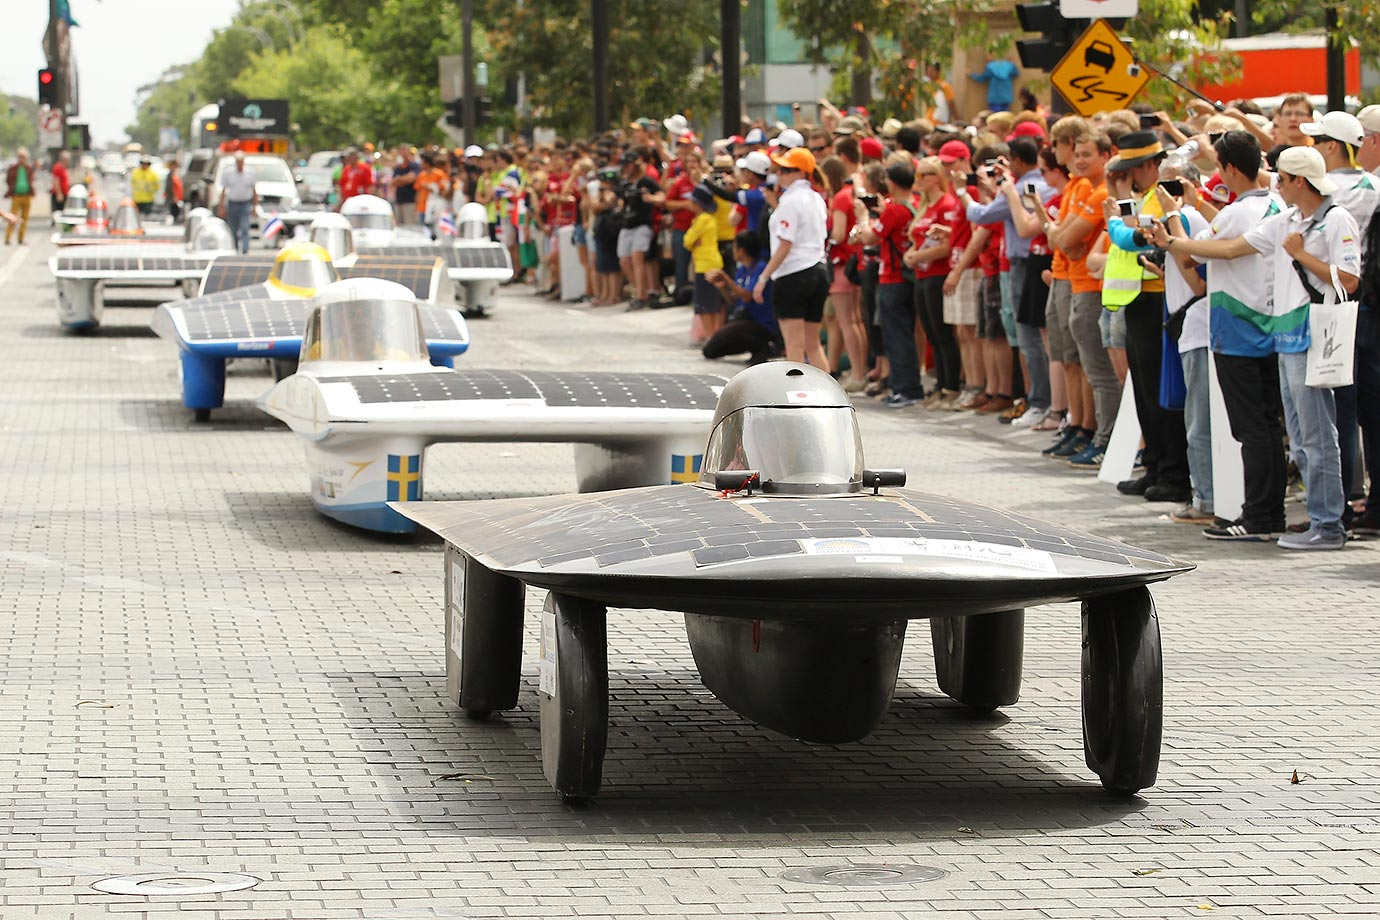 World Solar Challenge participants take part in a street parade after the 2015 Bridgestone World Solar Challenge in Adelaide, Australia.